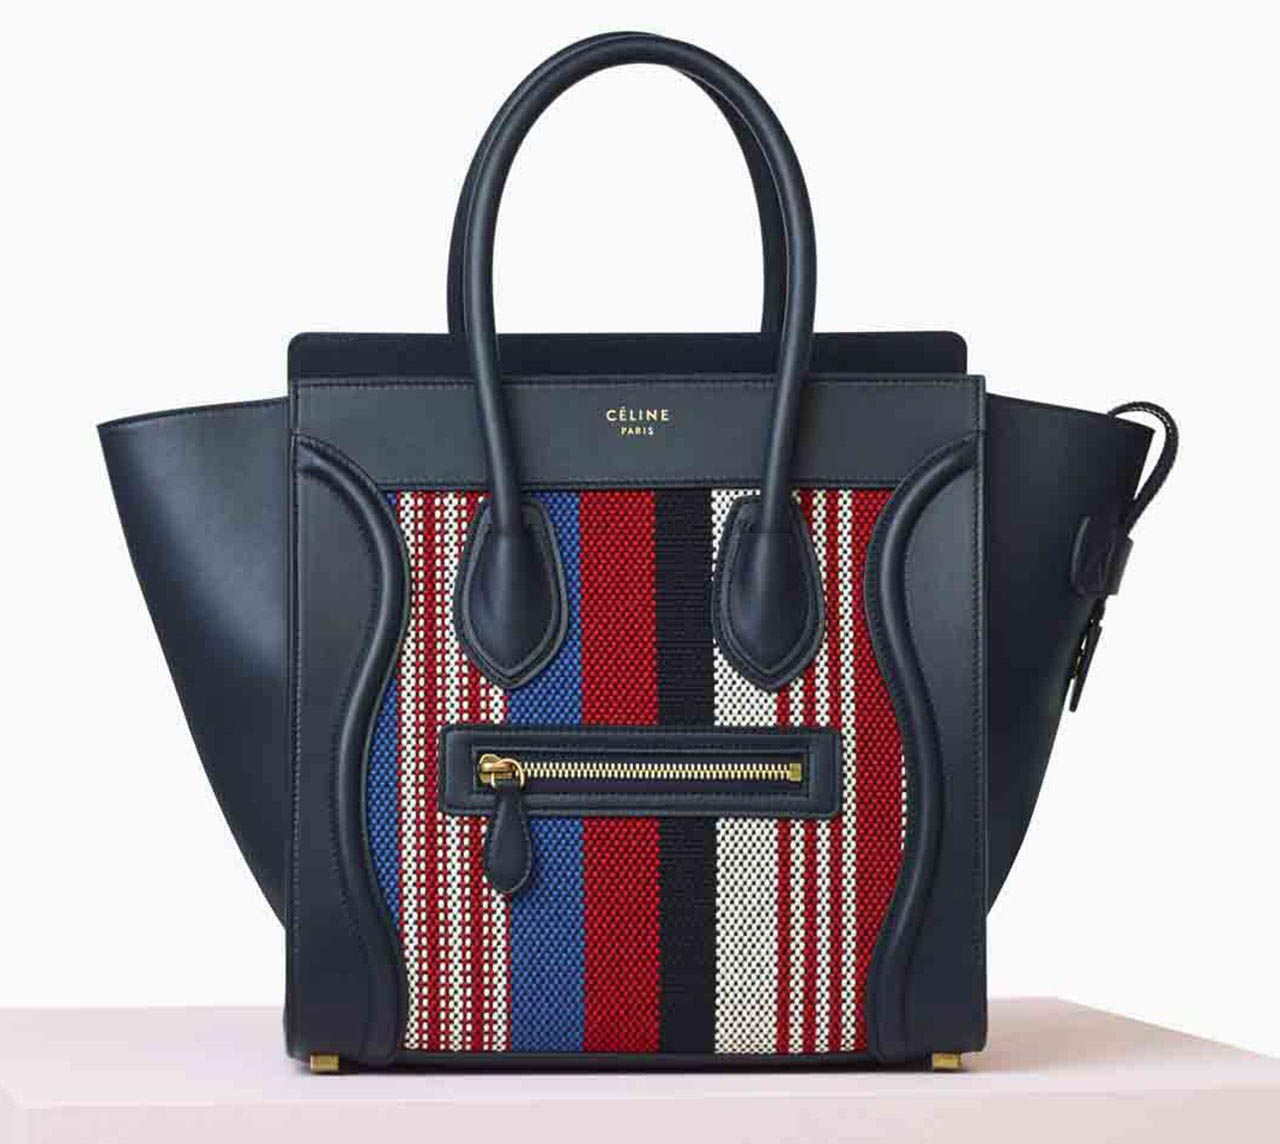 After originally applying for legal copyright protection of its infamous Luggage Tote, Celine has been awarded the Trade Dress protection, a reference to the characteristics of the visual appearance of a product or its packaging that communicate to consumers its origin. Protection of the shape and appearance will hopefully deter counterfeiters.